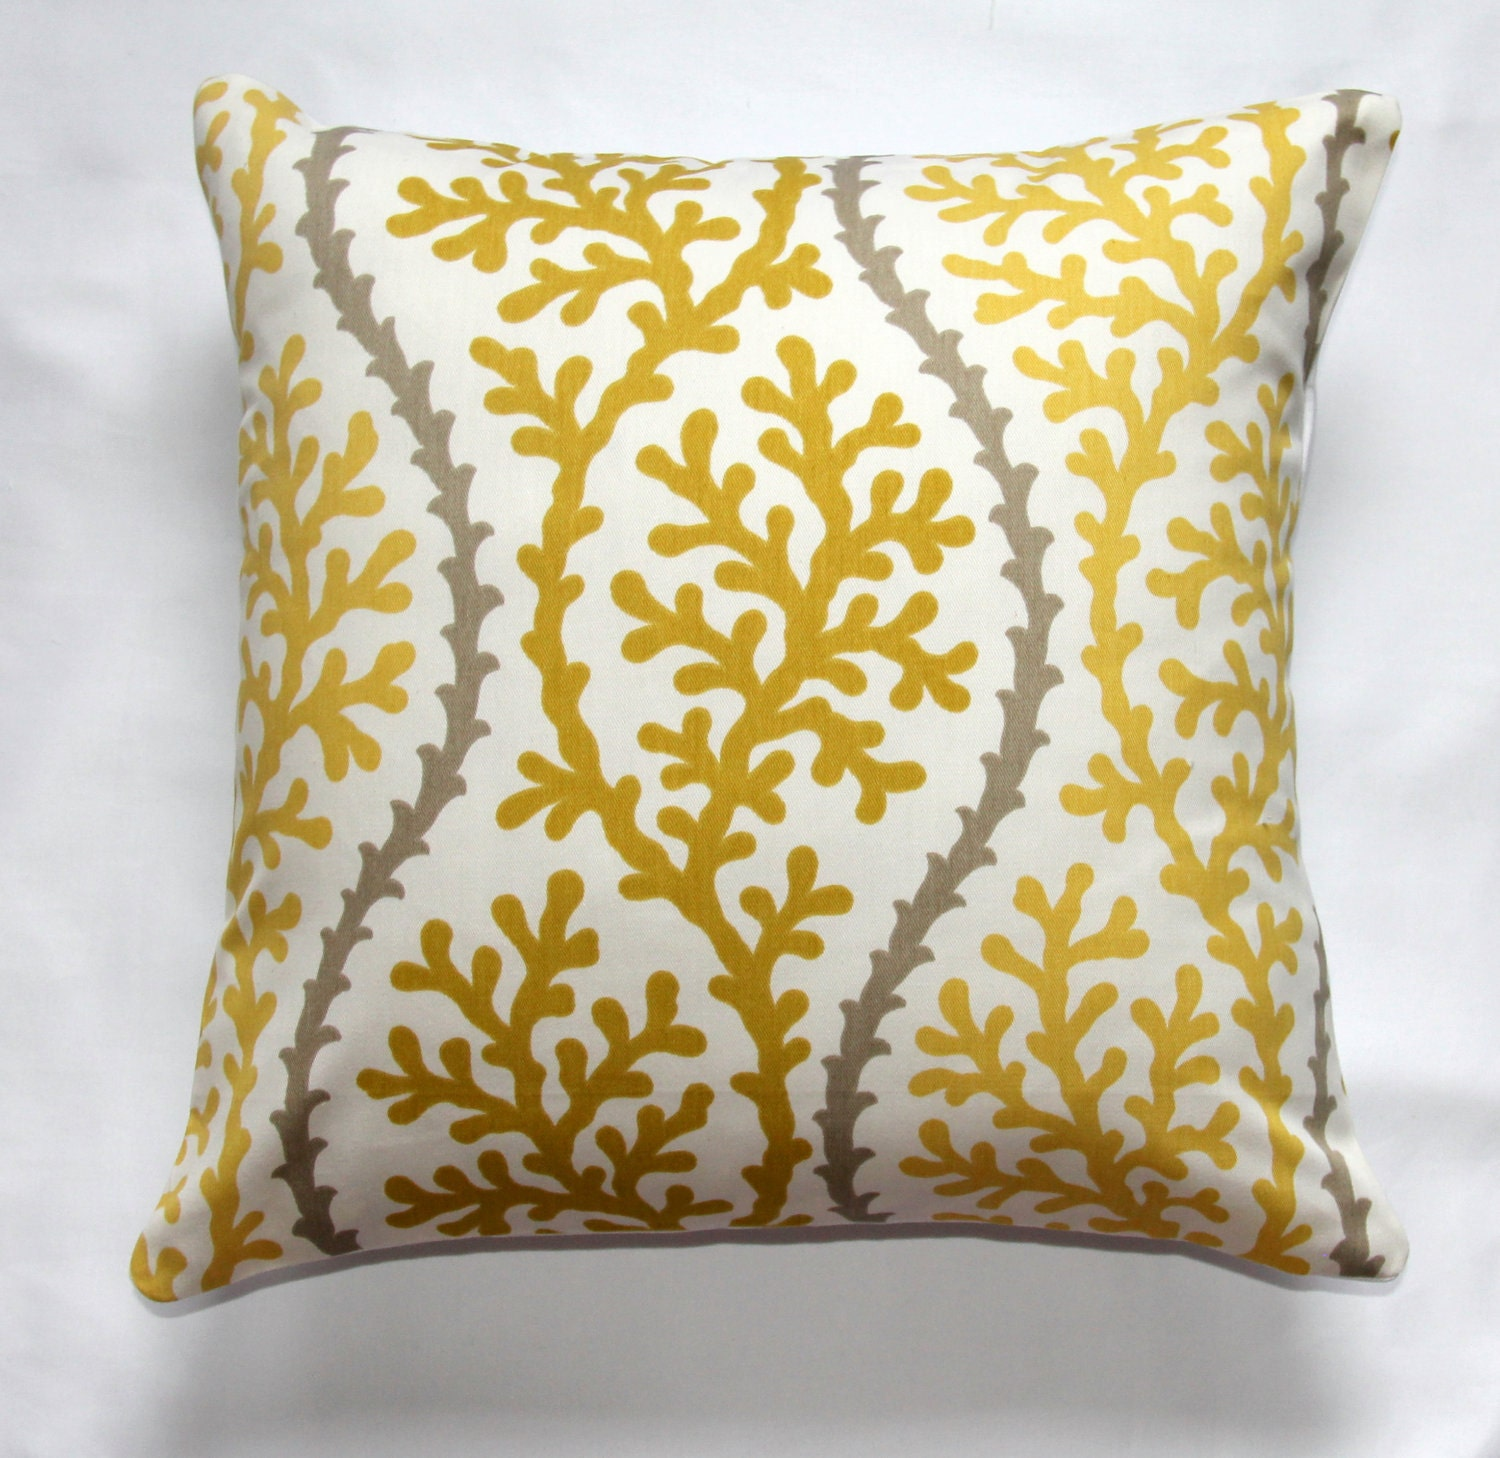 Decorative Pillows Etsy : Pillows decorative pillow accent pillow by ModernTouchDesigns